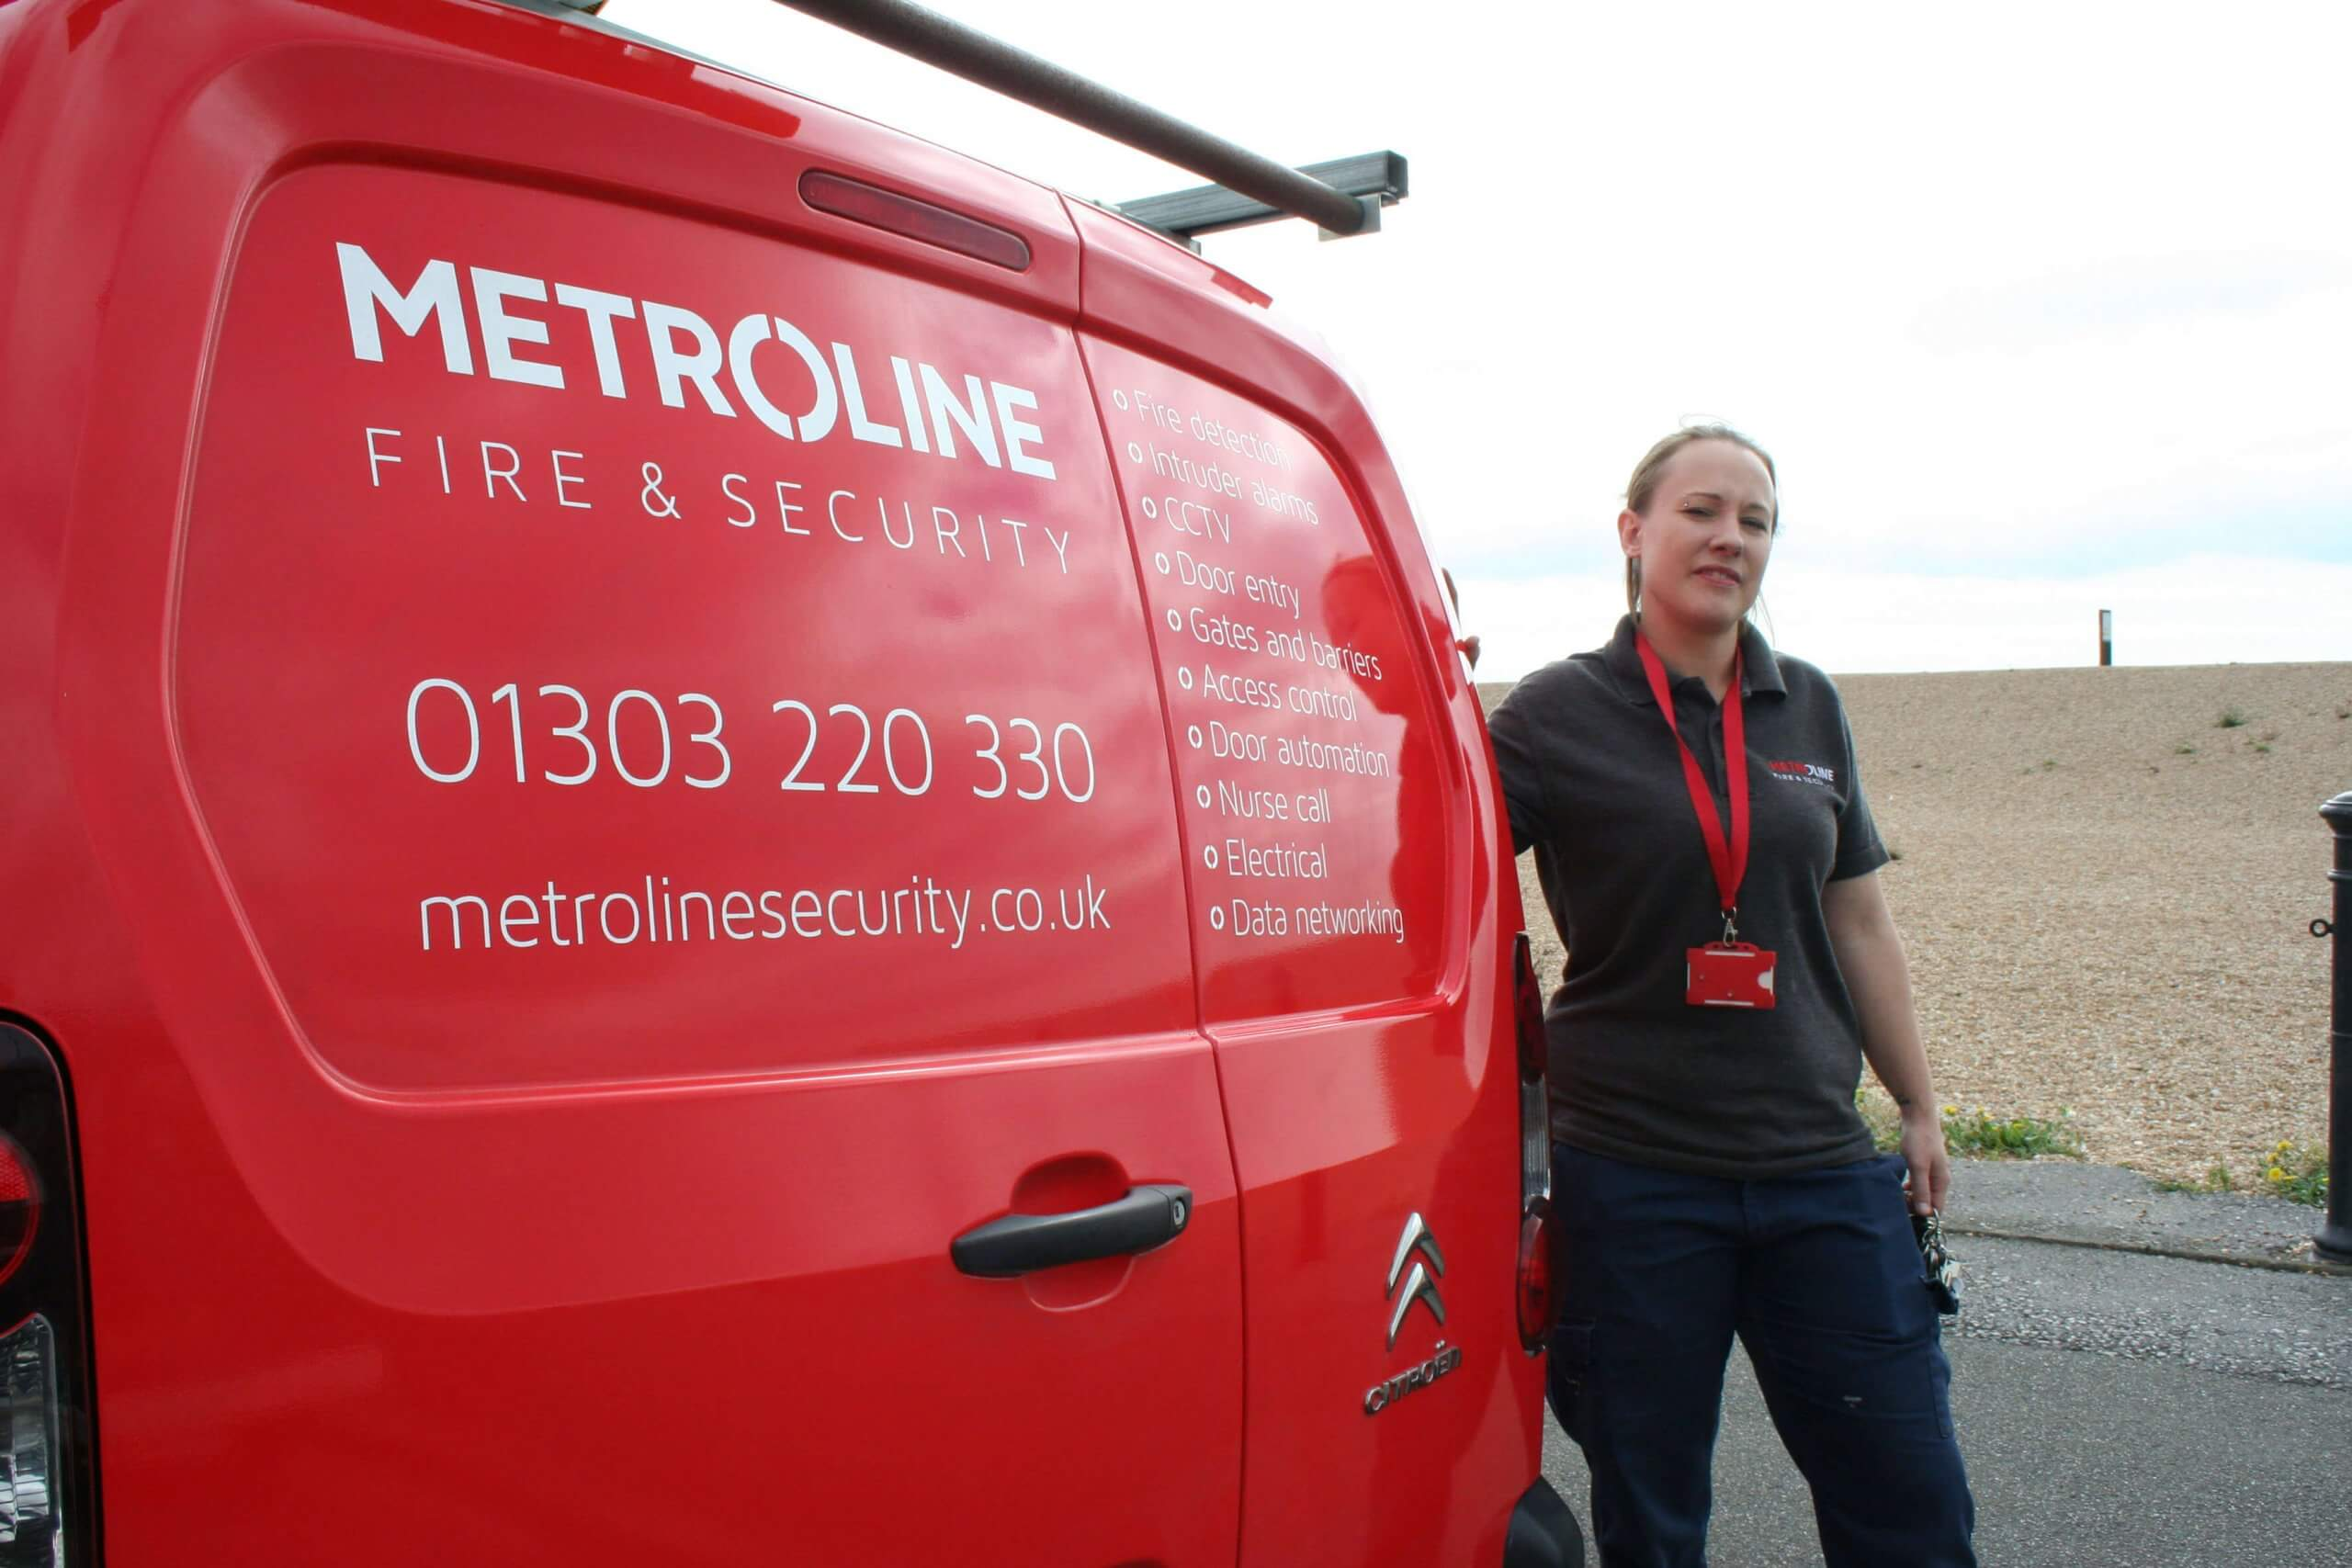 Metroline Fire and Security using JobWatch